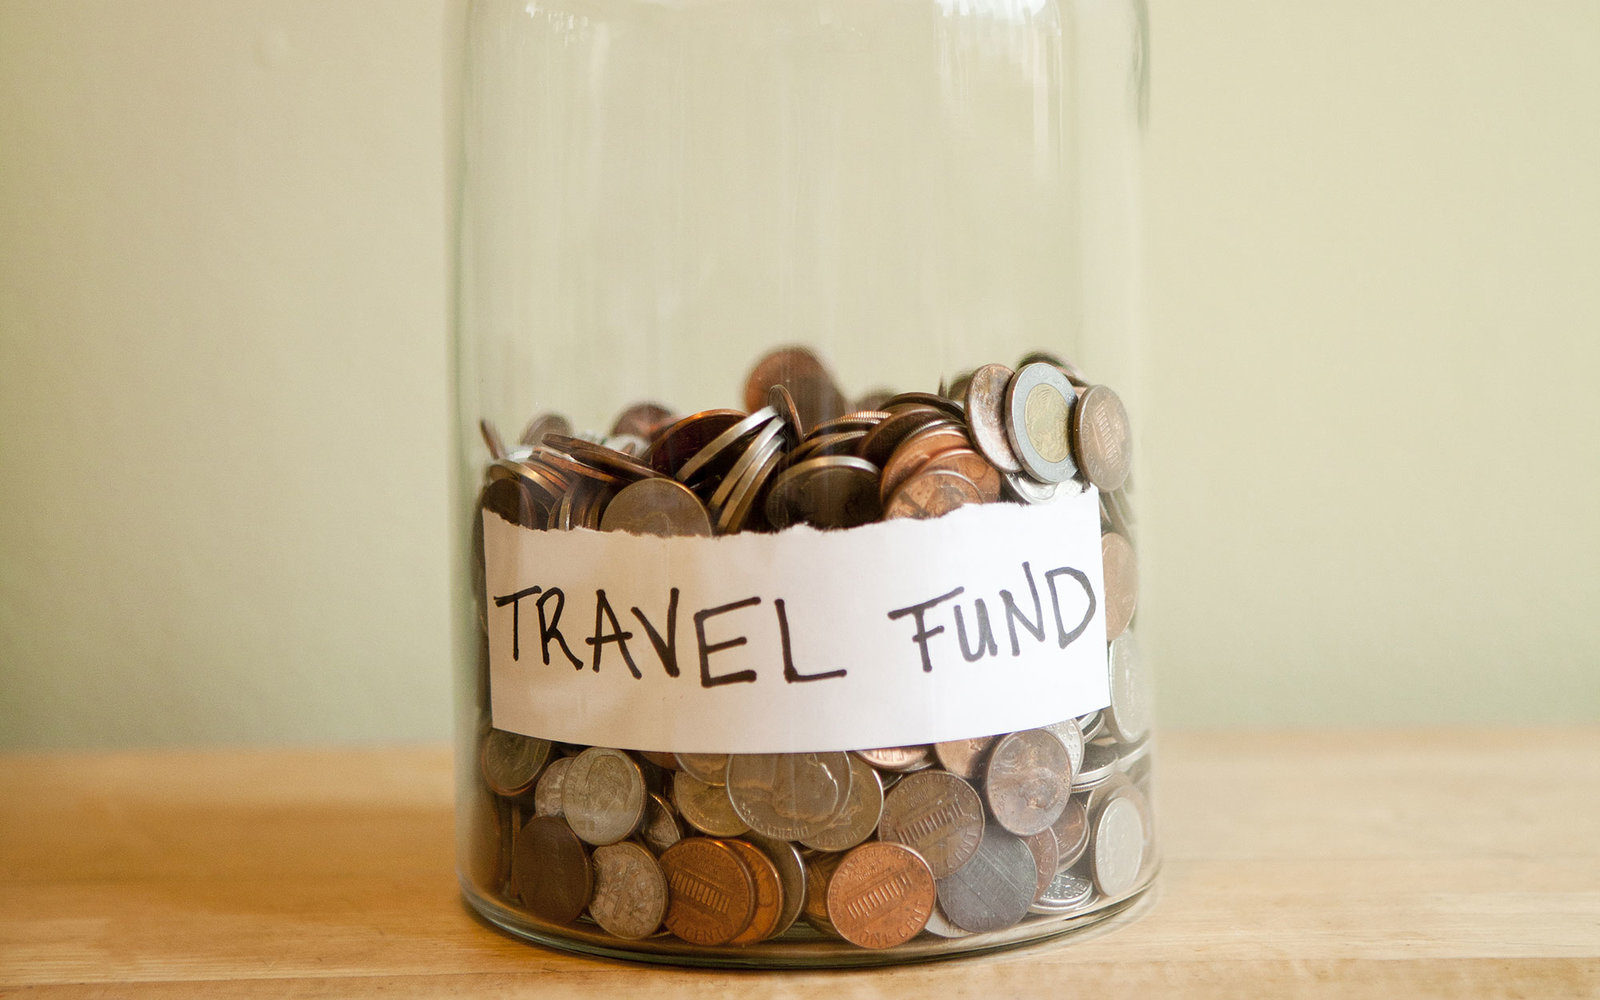 Coins in 'travel fund' jar